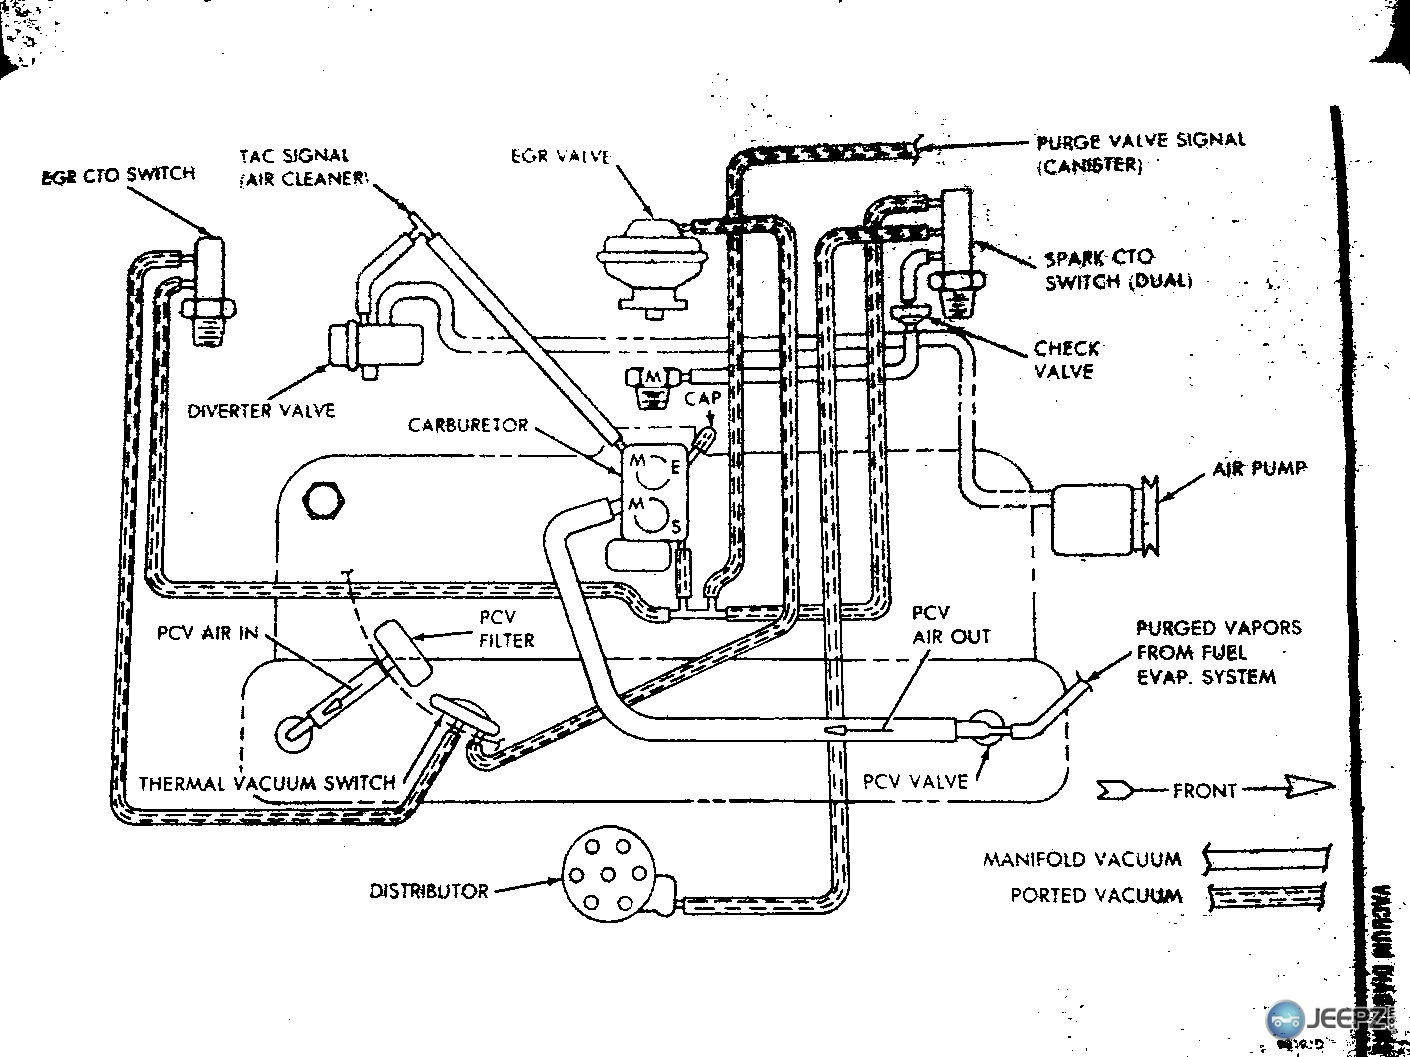 V8 Jeep Wrangler Vacuum Diagram Manual E Books 1993 Distributor Wiring 1987 Line Databasejeep Hoses